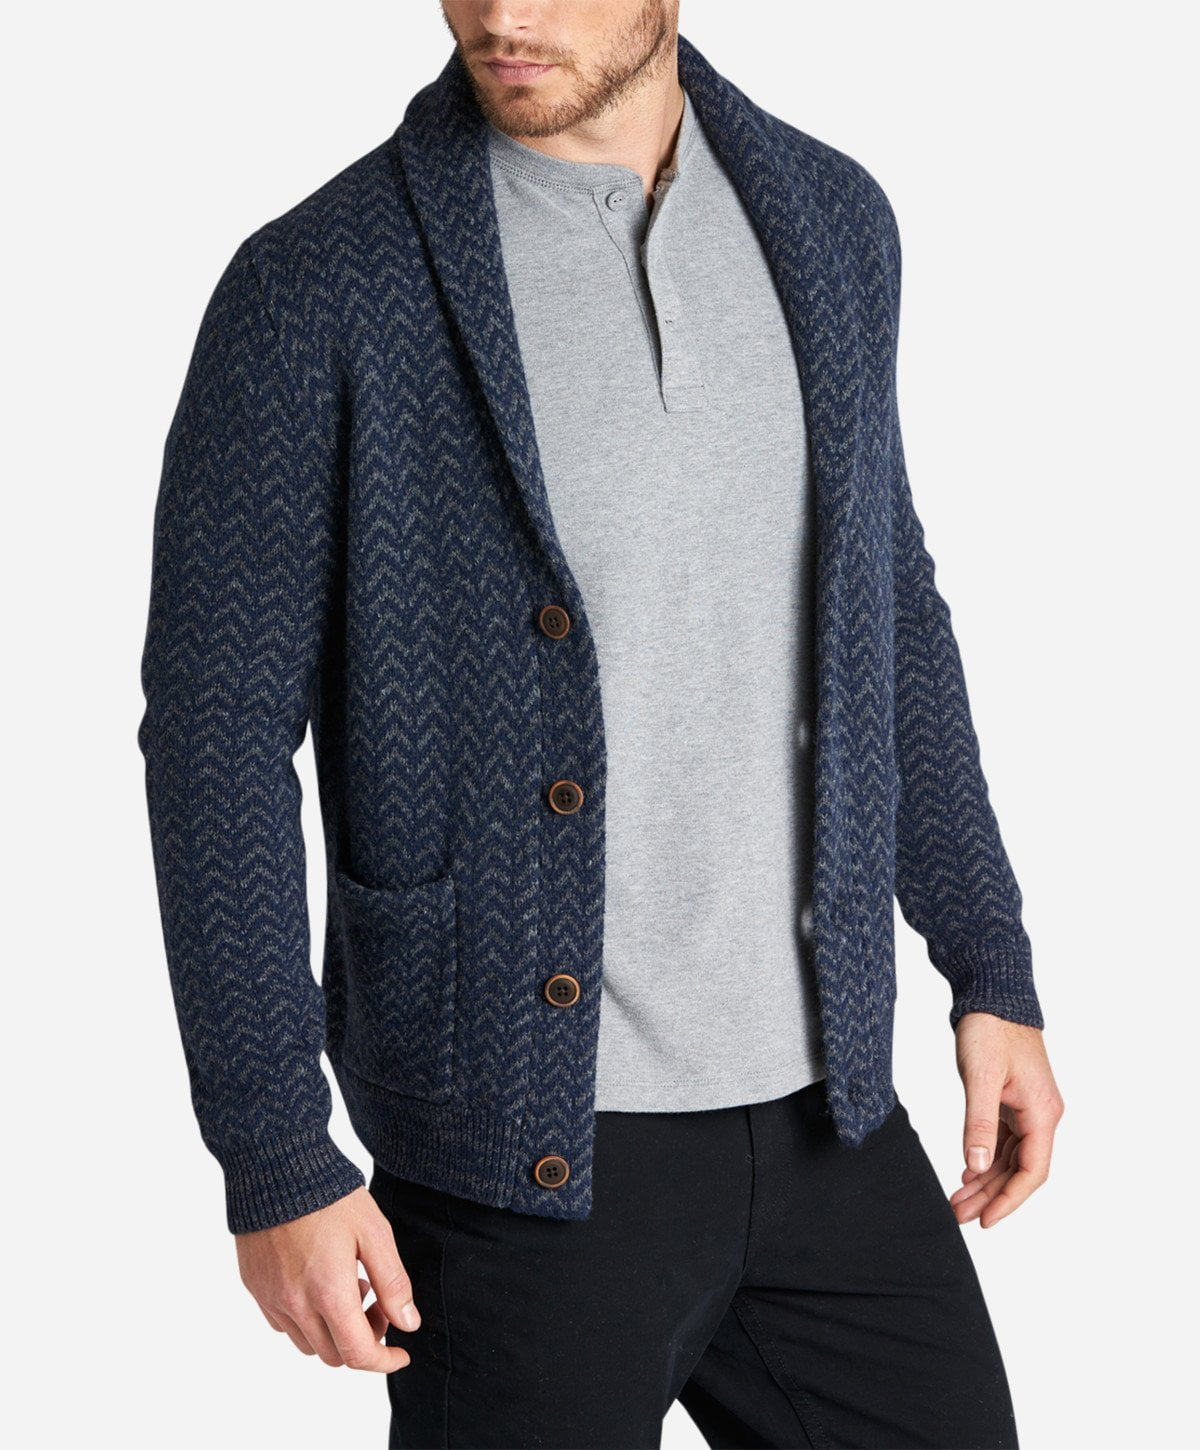 Ravenwood Cardigan - Navy